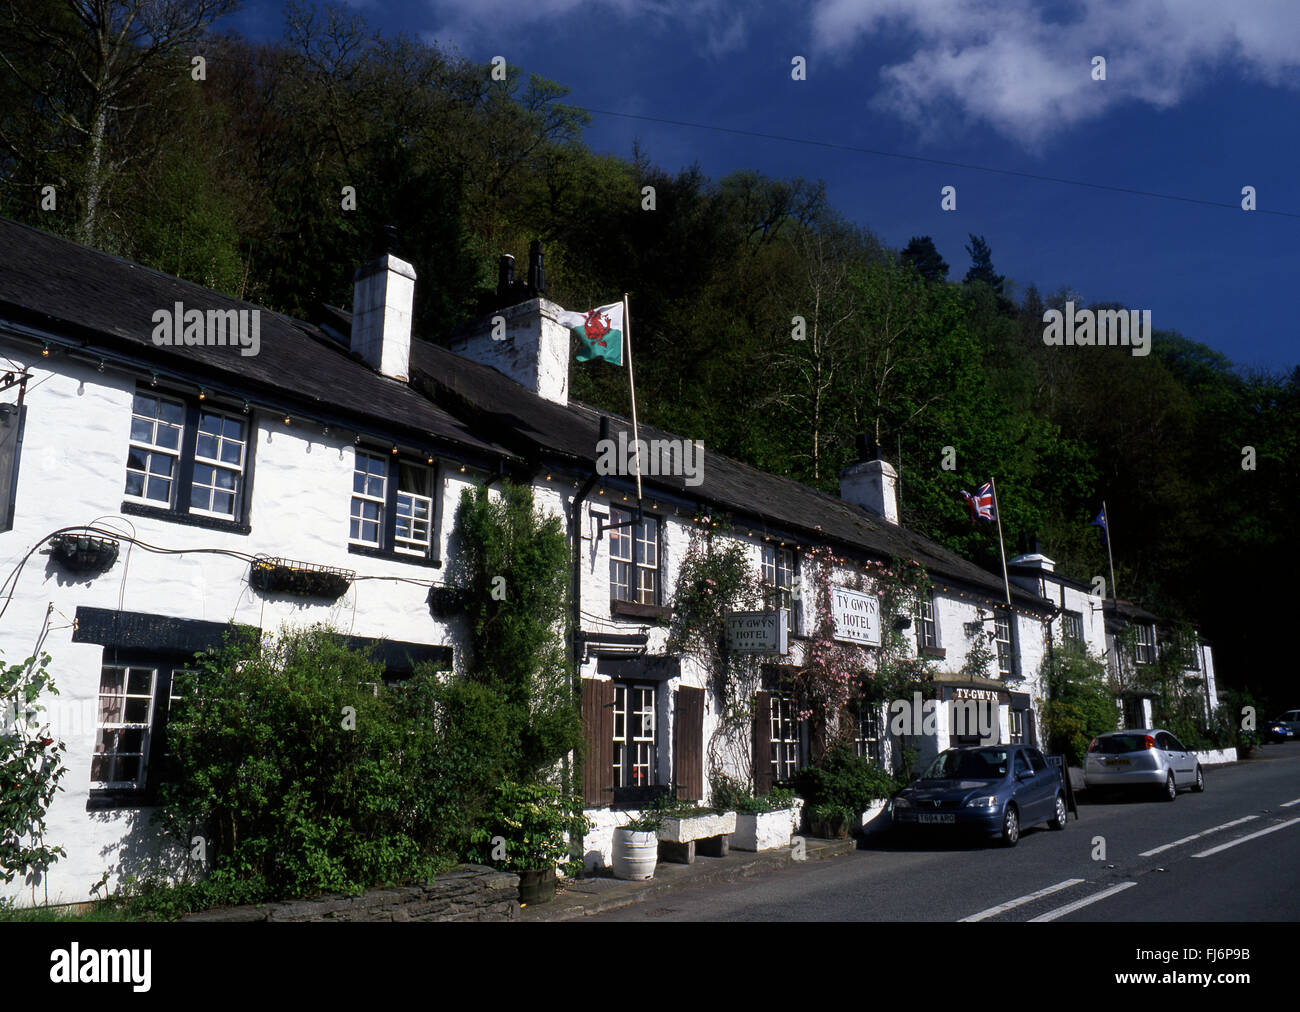 Ty Gwyn Hotel on main A470 road Betws-y-Coed Conwy County Snowdonia North Wales UK - Stock Image